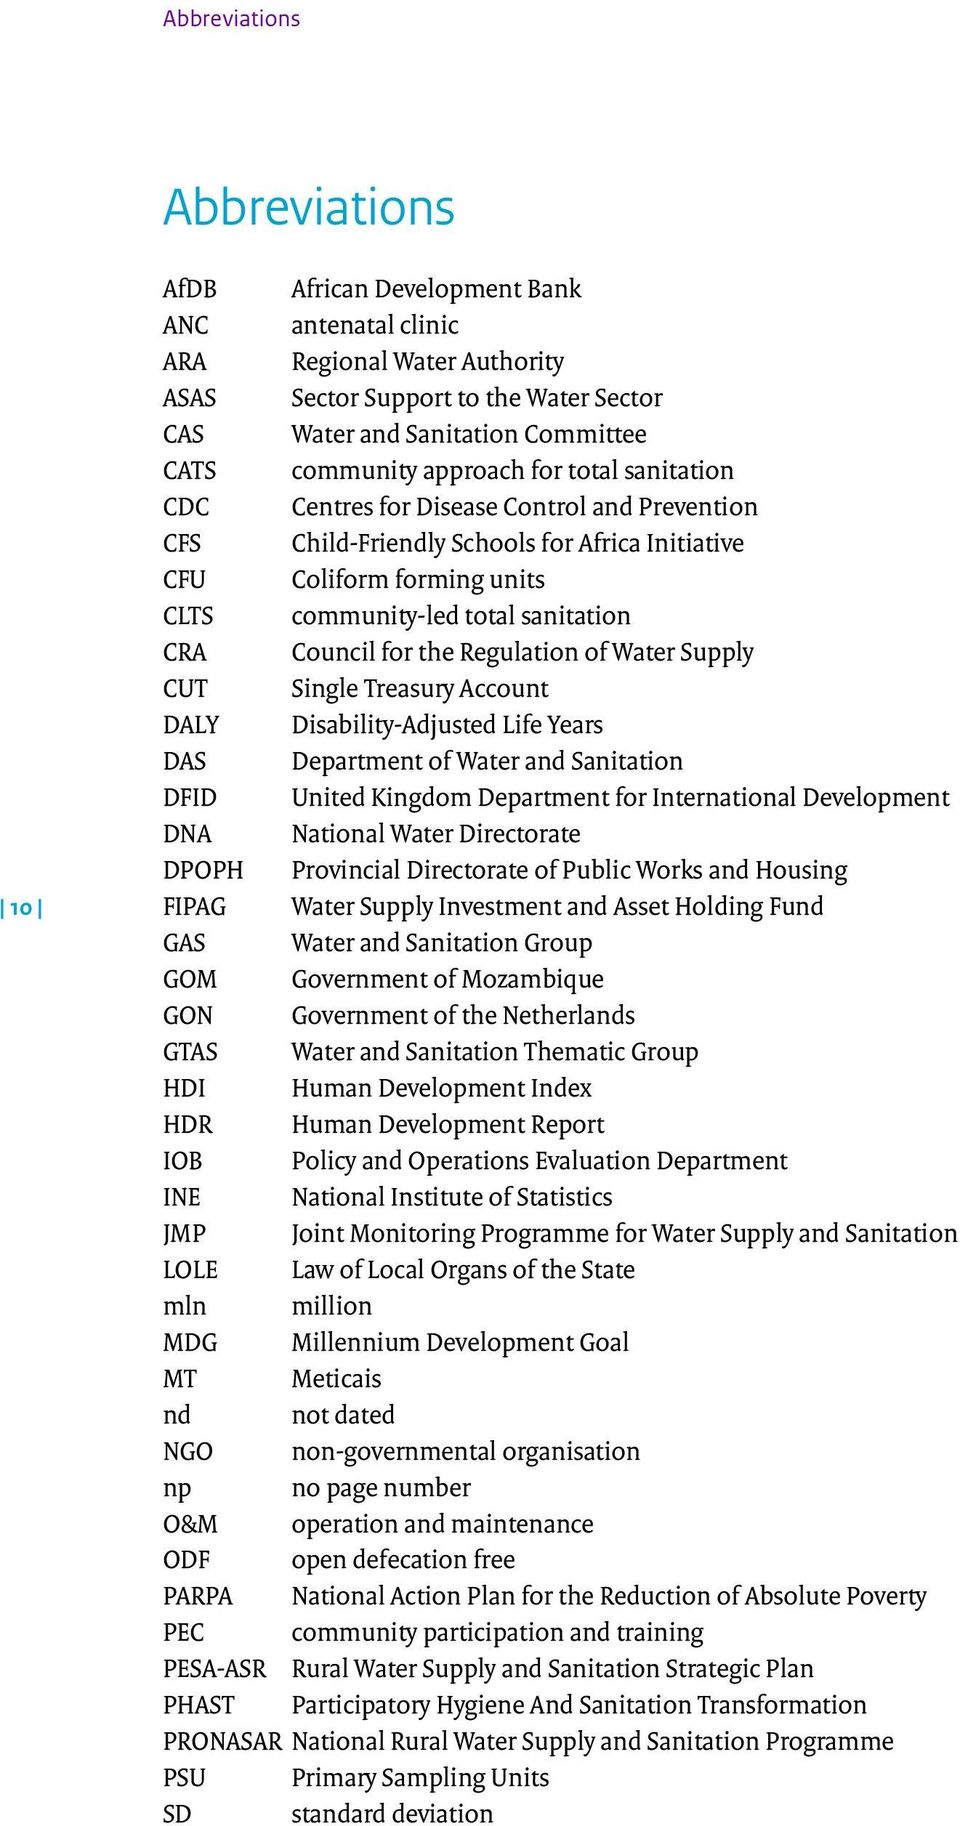 CRA Council for the Regulation of Water Supply CUT Single Treasury Account DALY Disability-Adjusted Life Years DAS Department of Water and Sanitation DFID United Kingdom Department for International